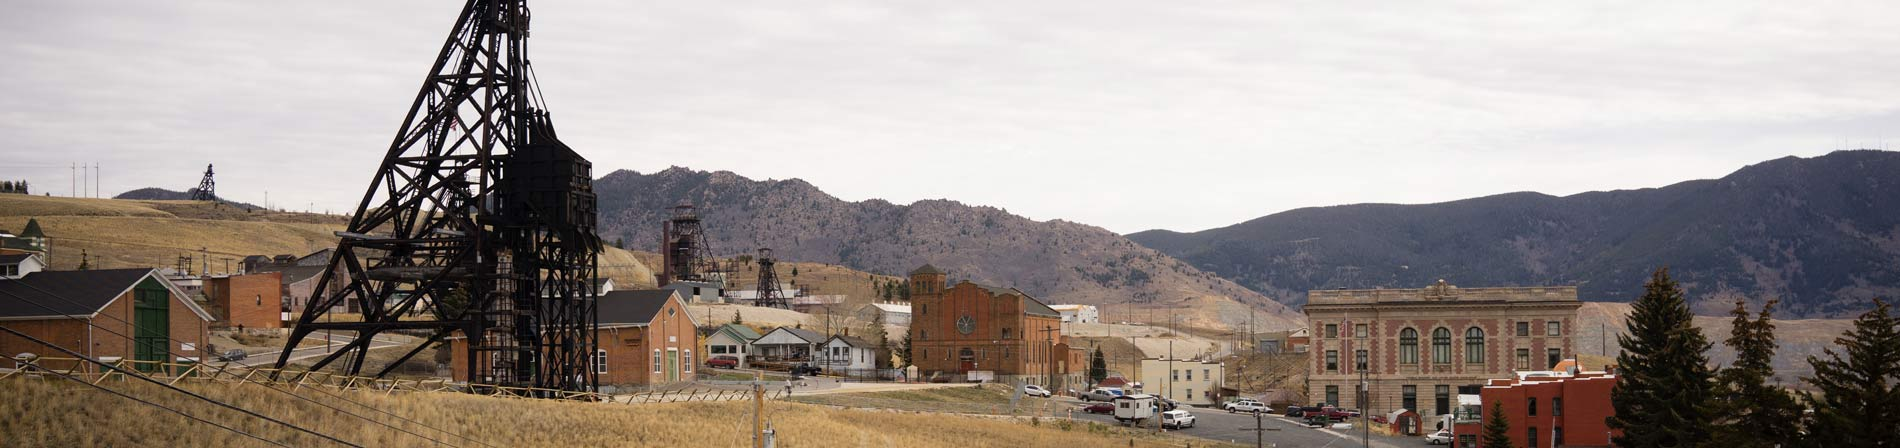 the city of Butte, Montana